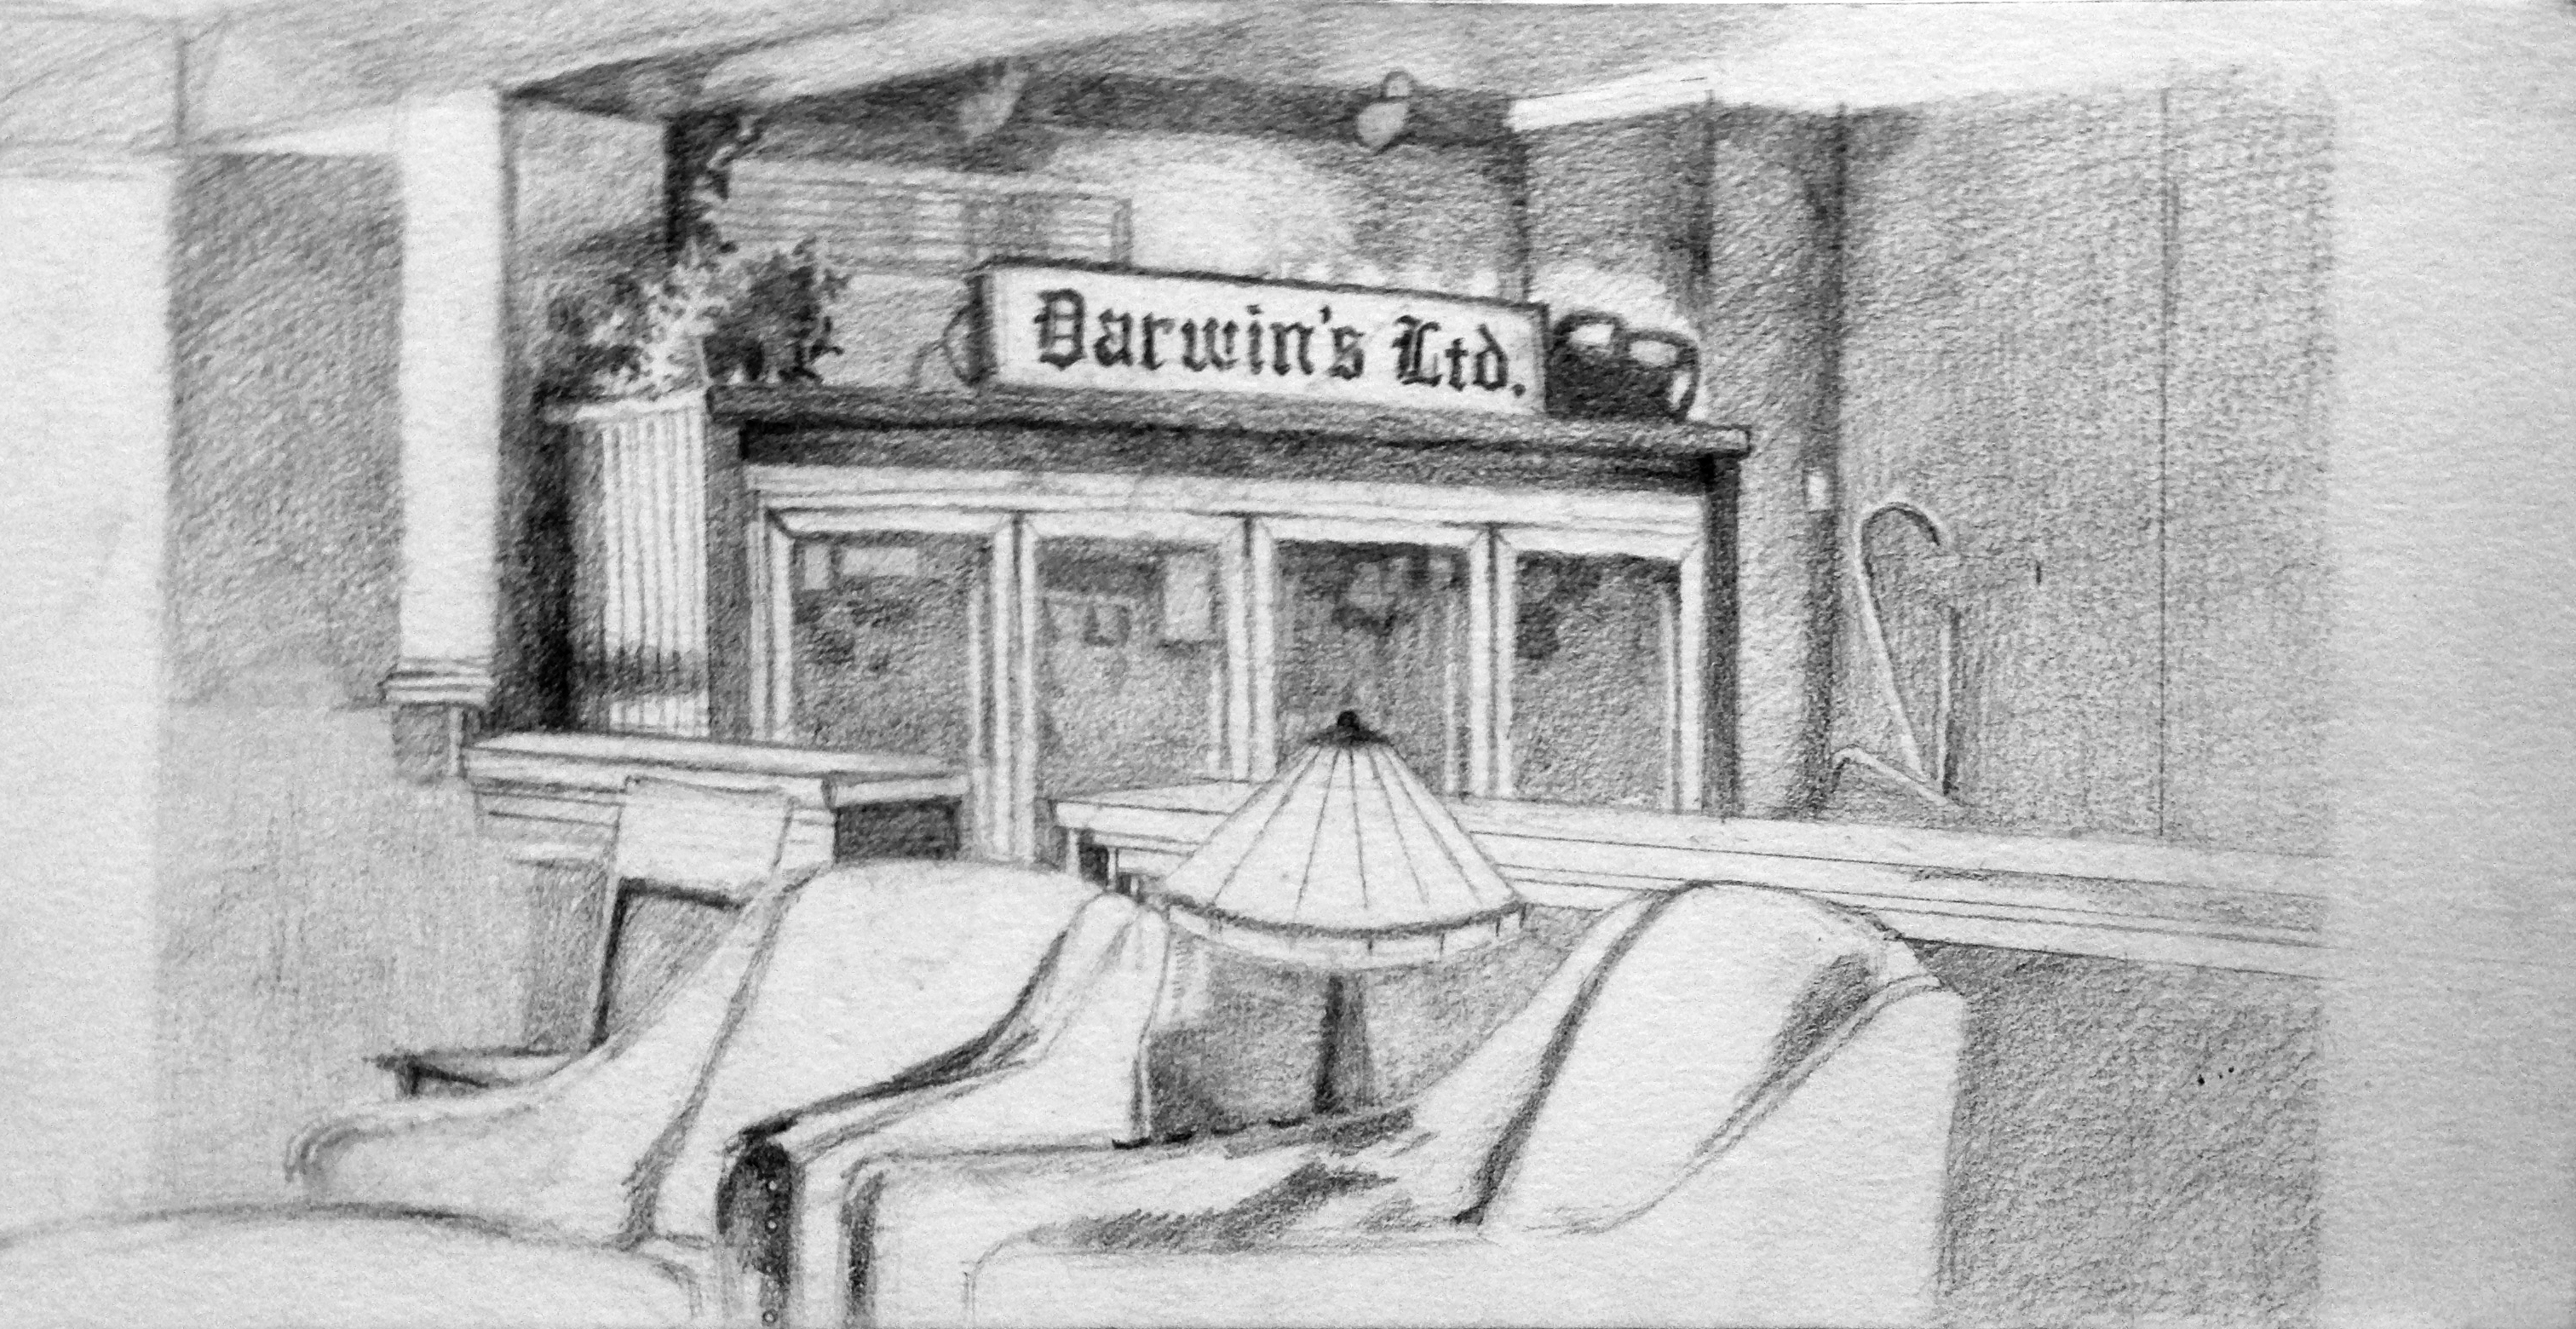 Darwin's Ltd. in Harvard Square